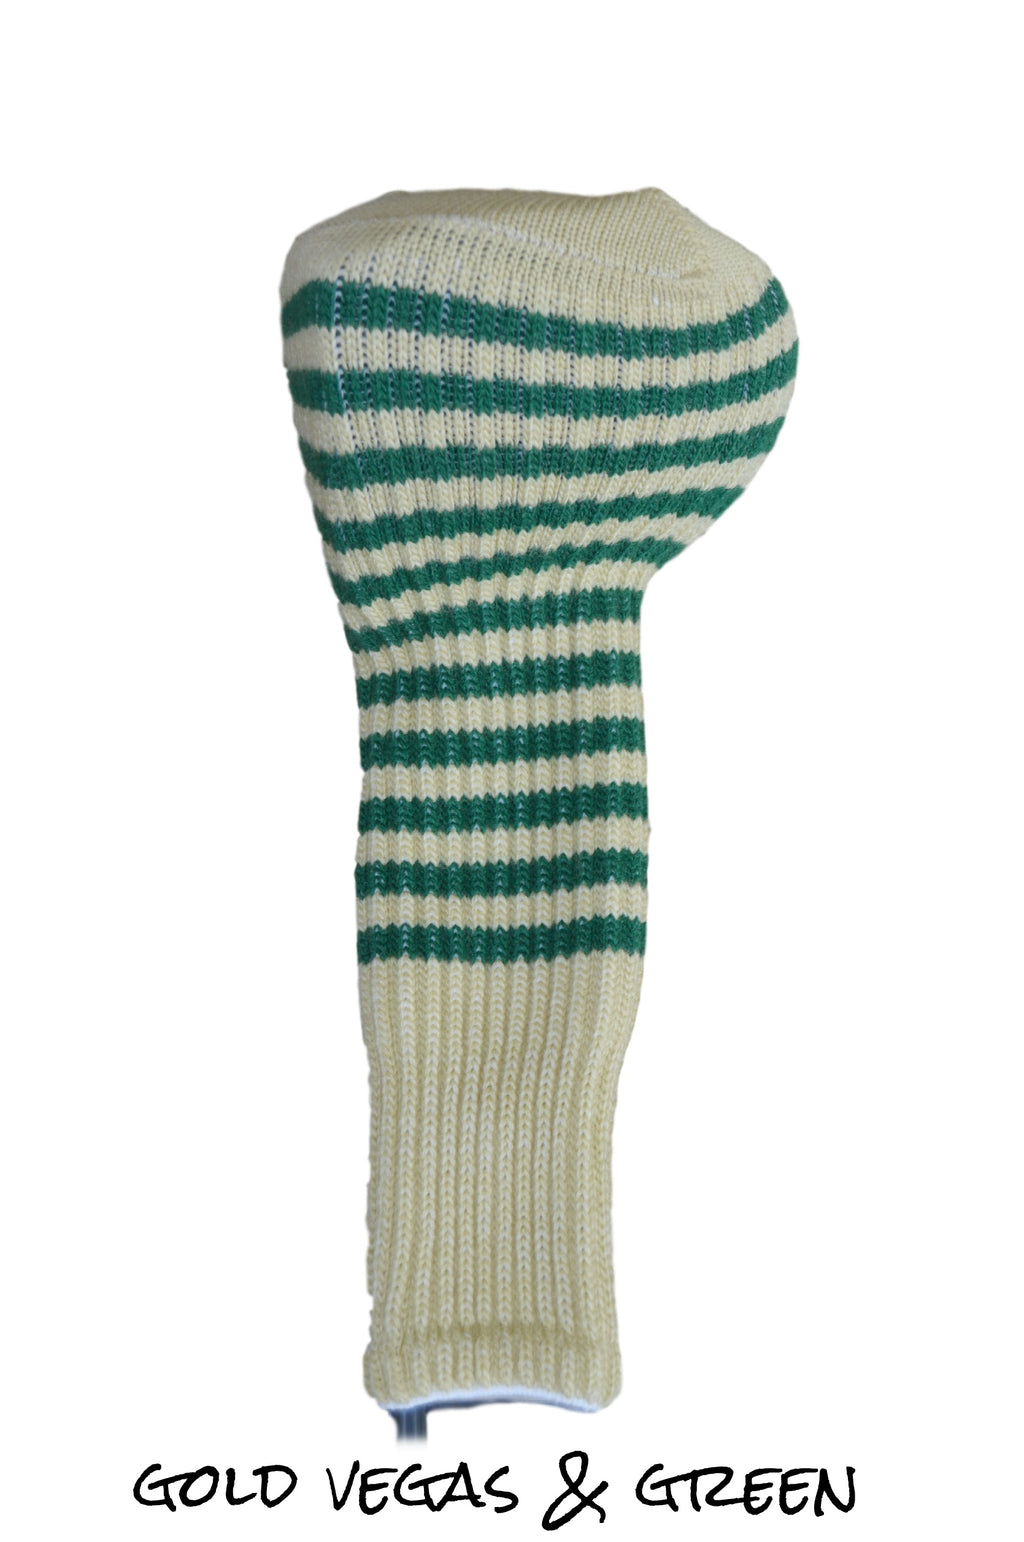 Gold Vegas and Green Club Sock Golf Headcover